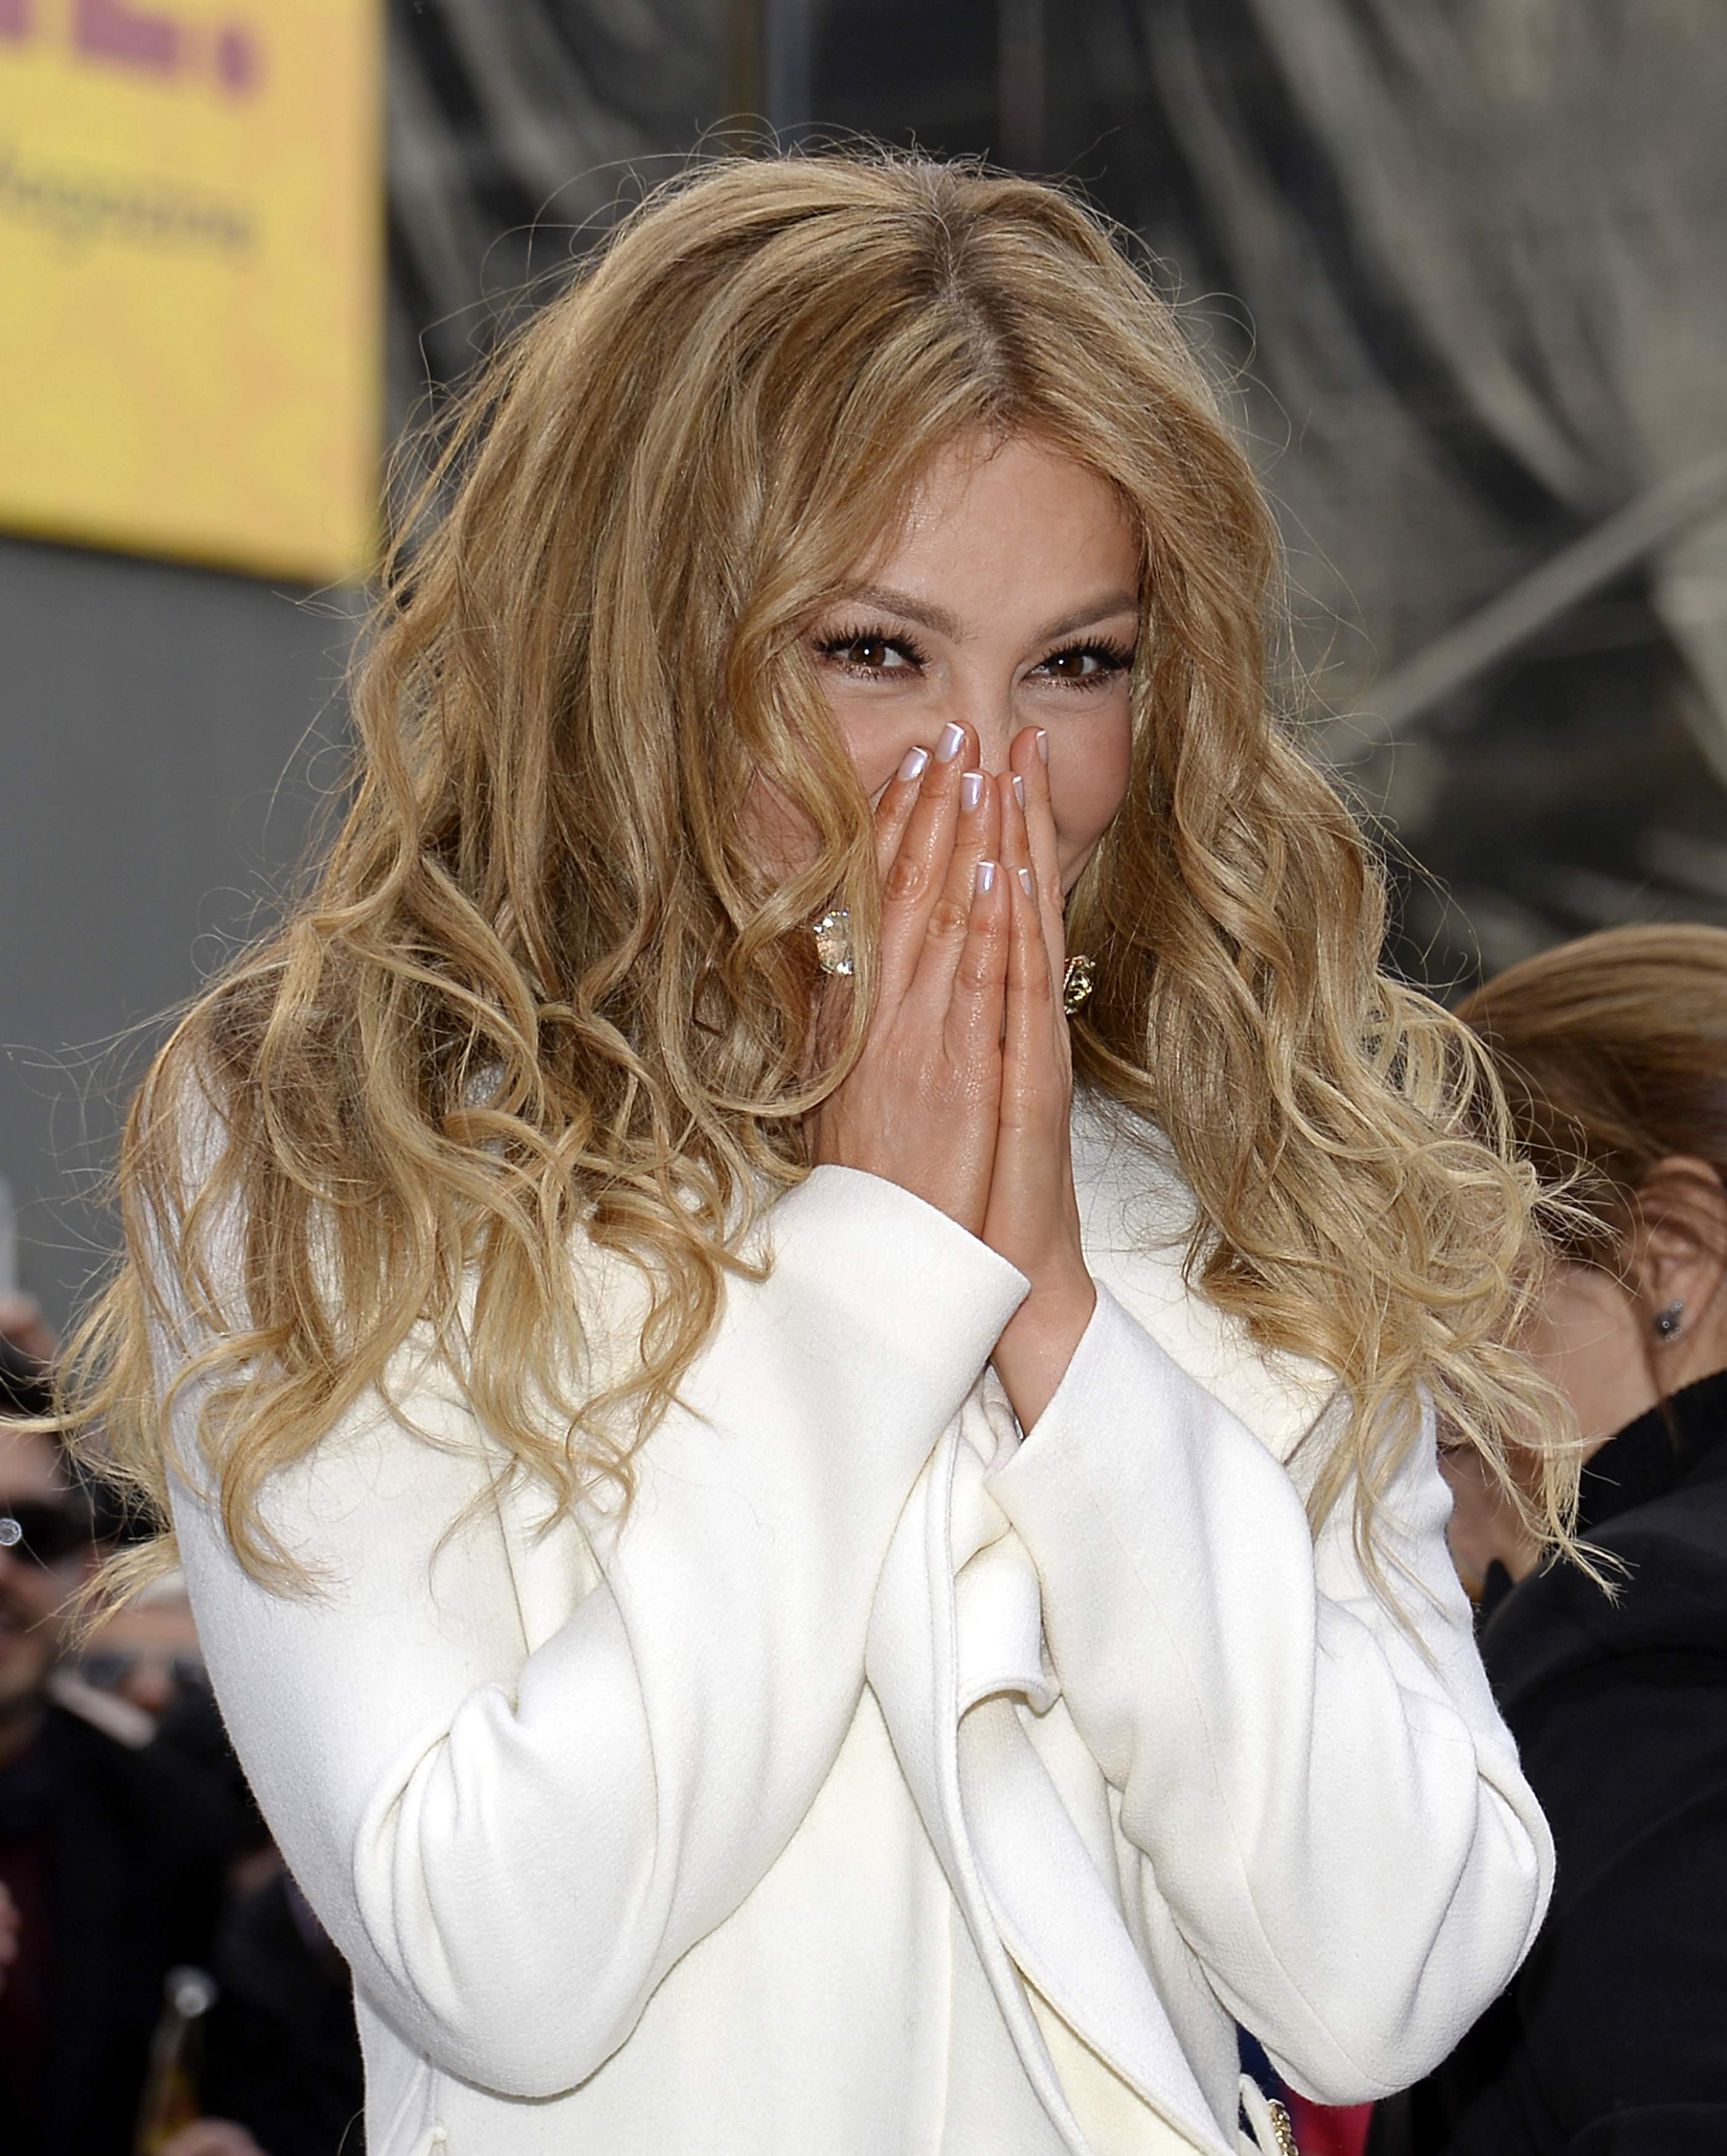 Mexican singer-songwriter Thalia reacts during the ceremony to unveil her star on the Hollywood Walk of Fame